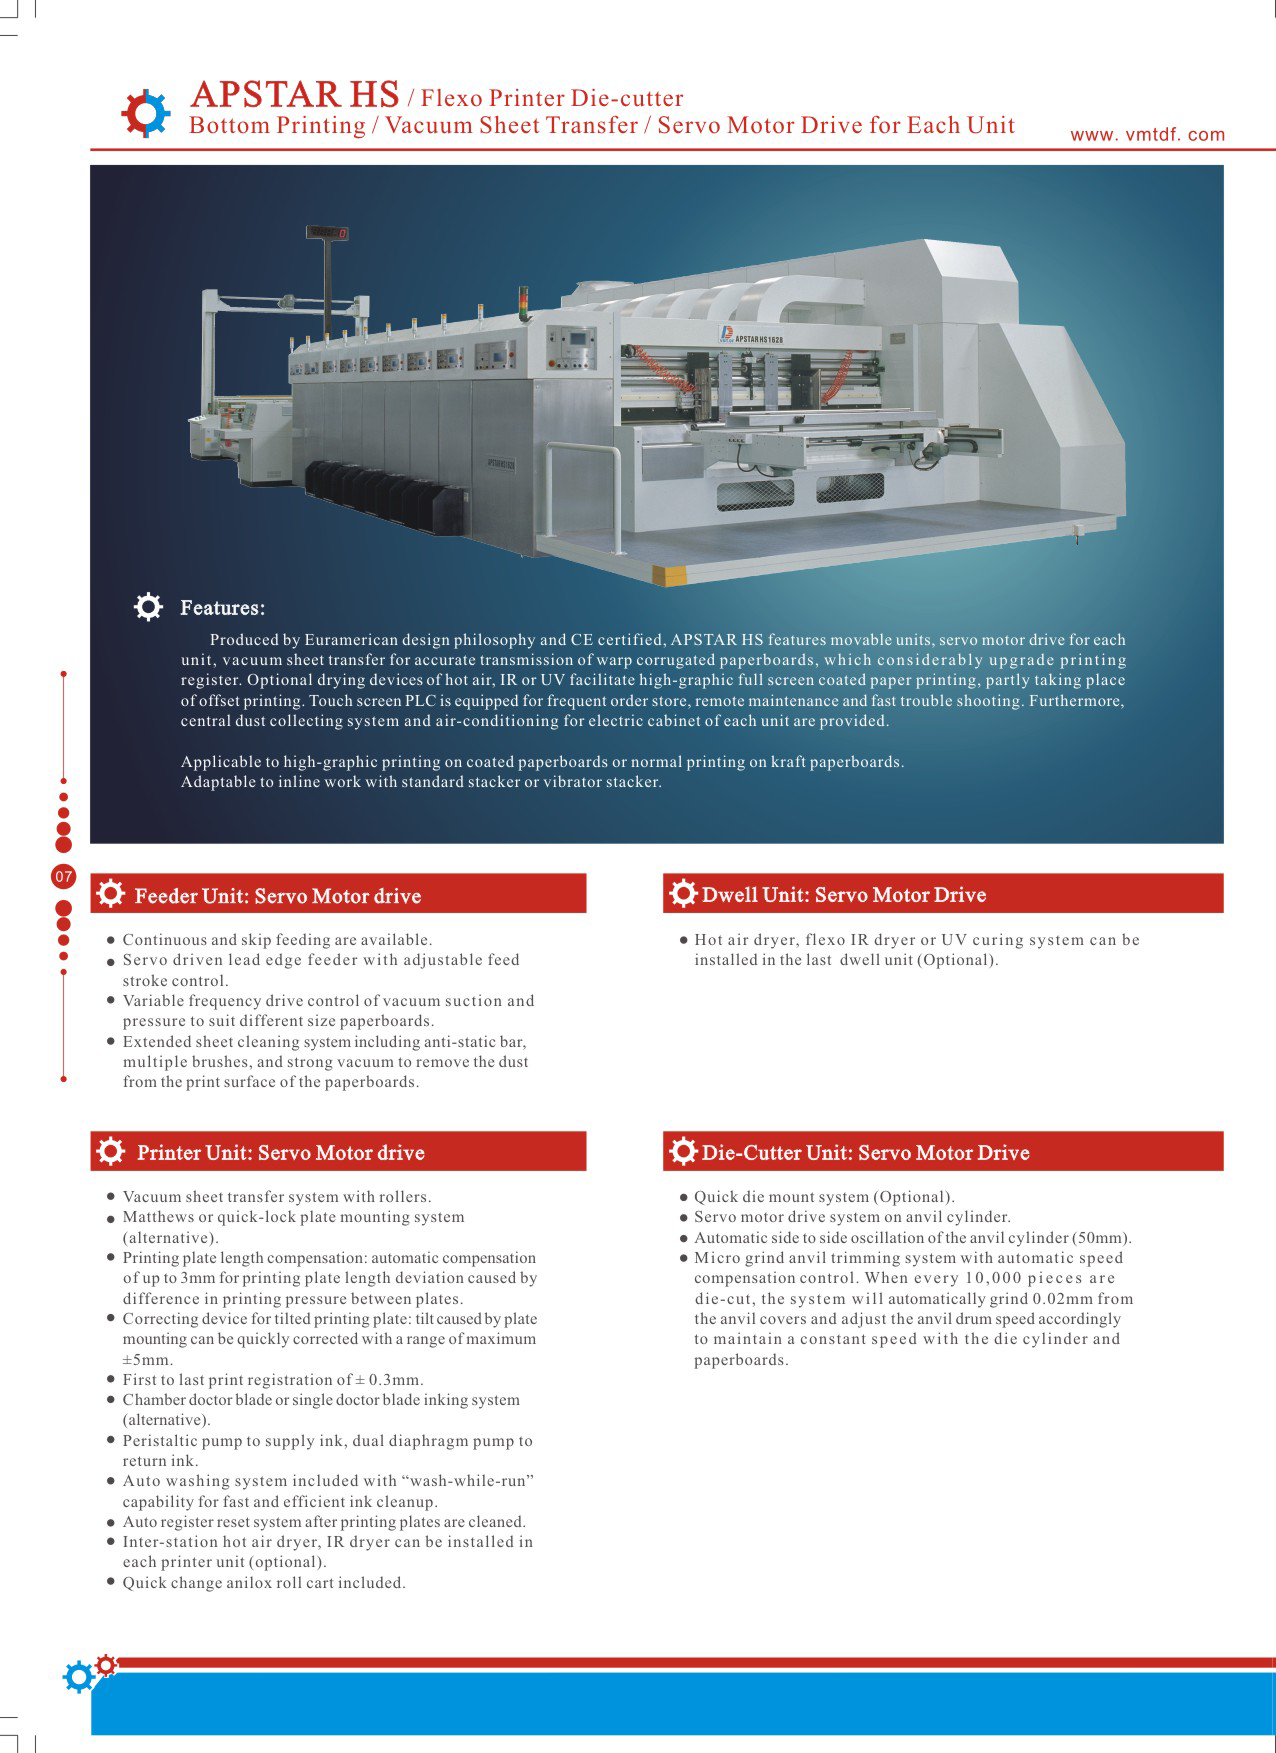 Learn more about the Apstar HS Flexo Printer Die Cutter in the Dong Fang brochure.